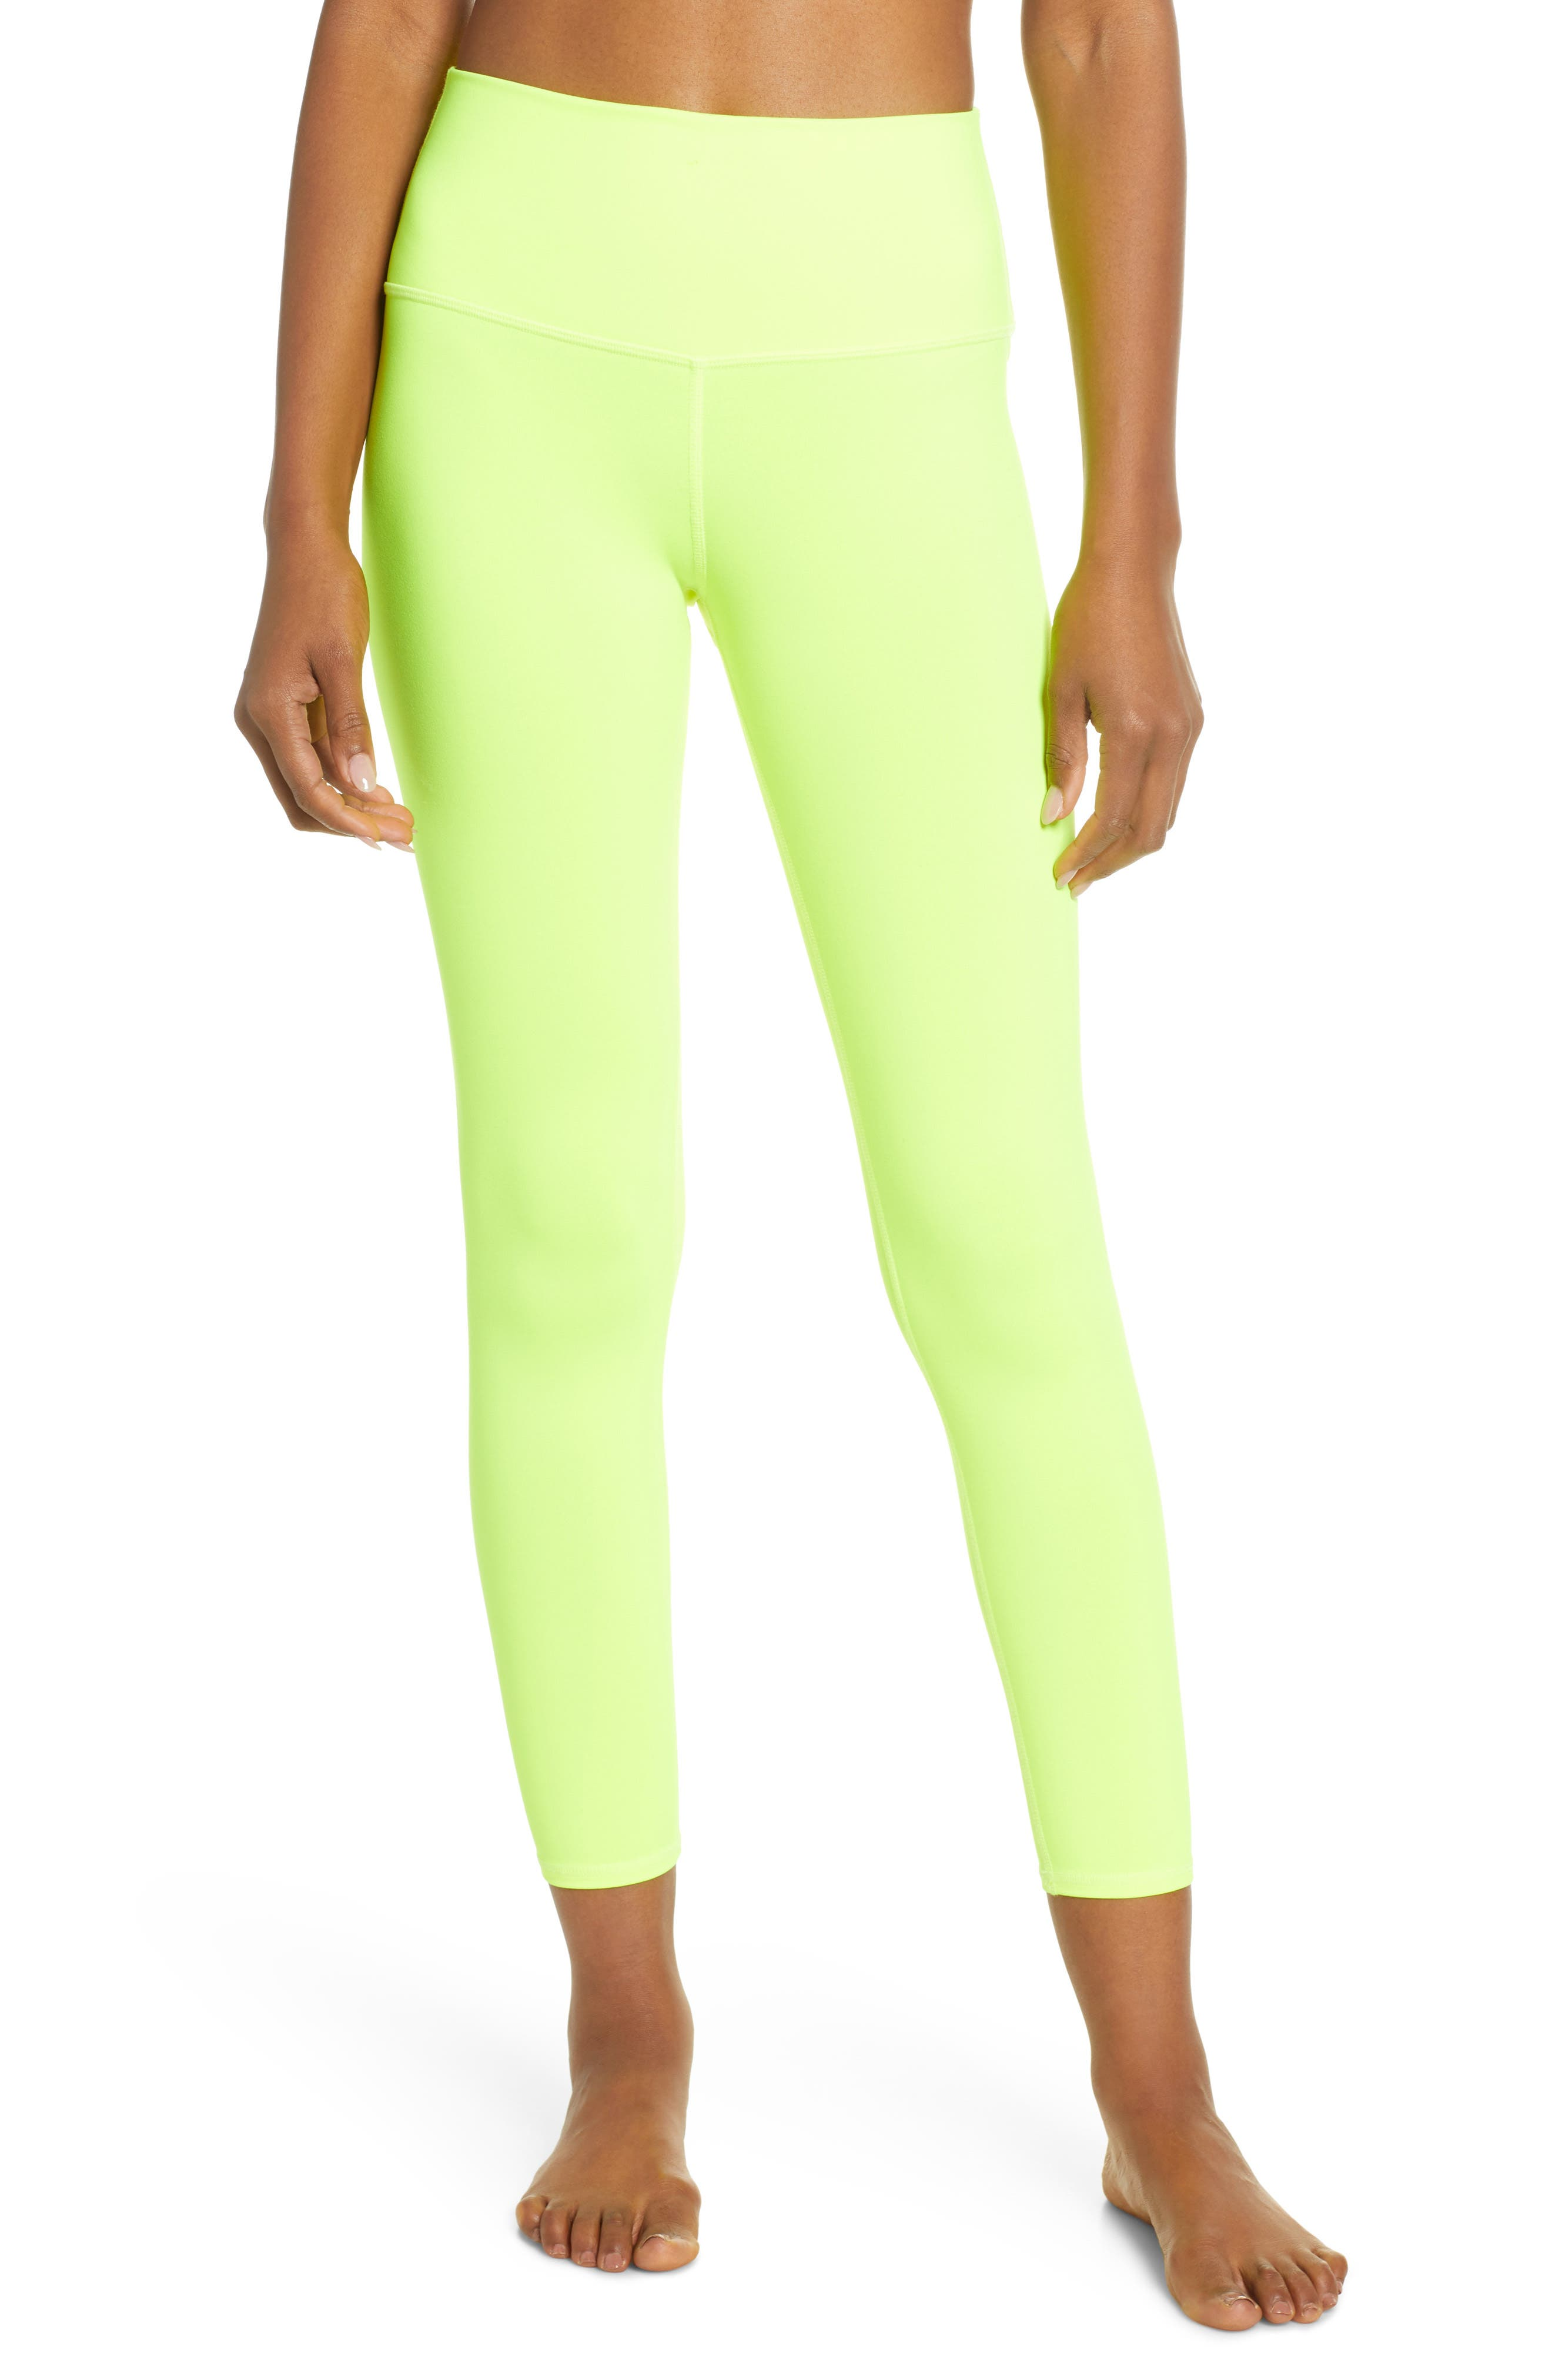 Airbrush 7/8 High Waist Leggings, Main, color, HIGHLIGHTER